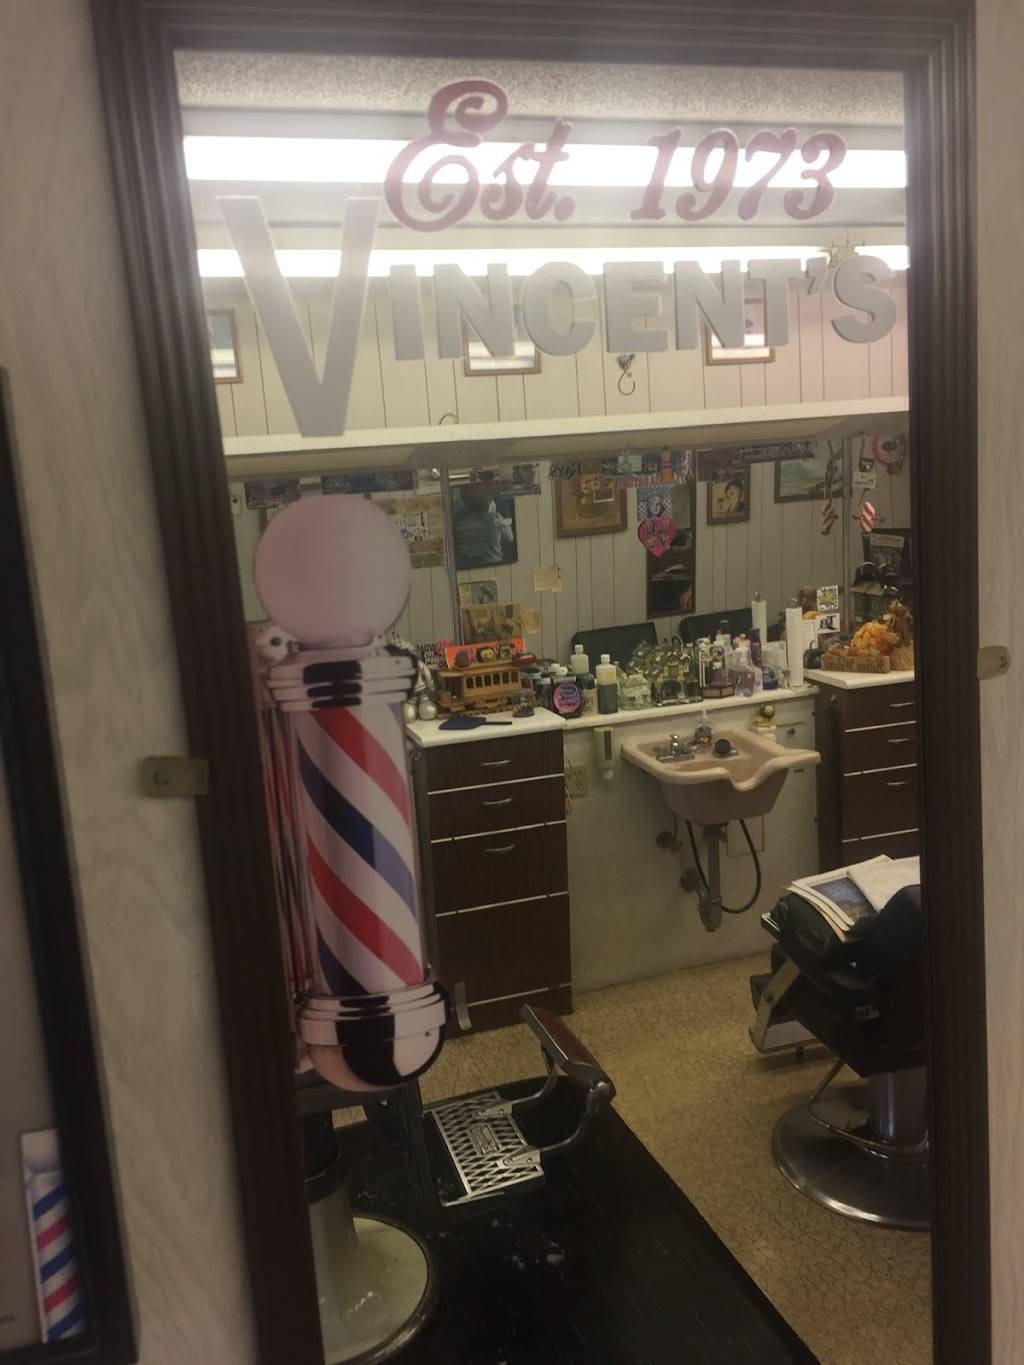 Vincents Barber Salon - hair care  | Photo 1 of 1 | Address: 900 54th Ave N, St. Petersburg, FL 33703, USA | Phone: (727) 525-8813